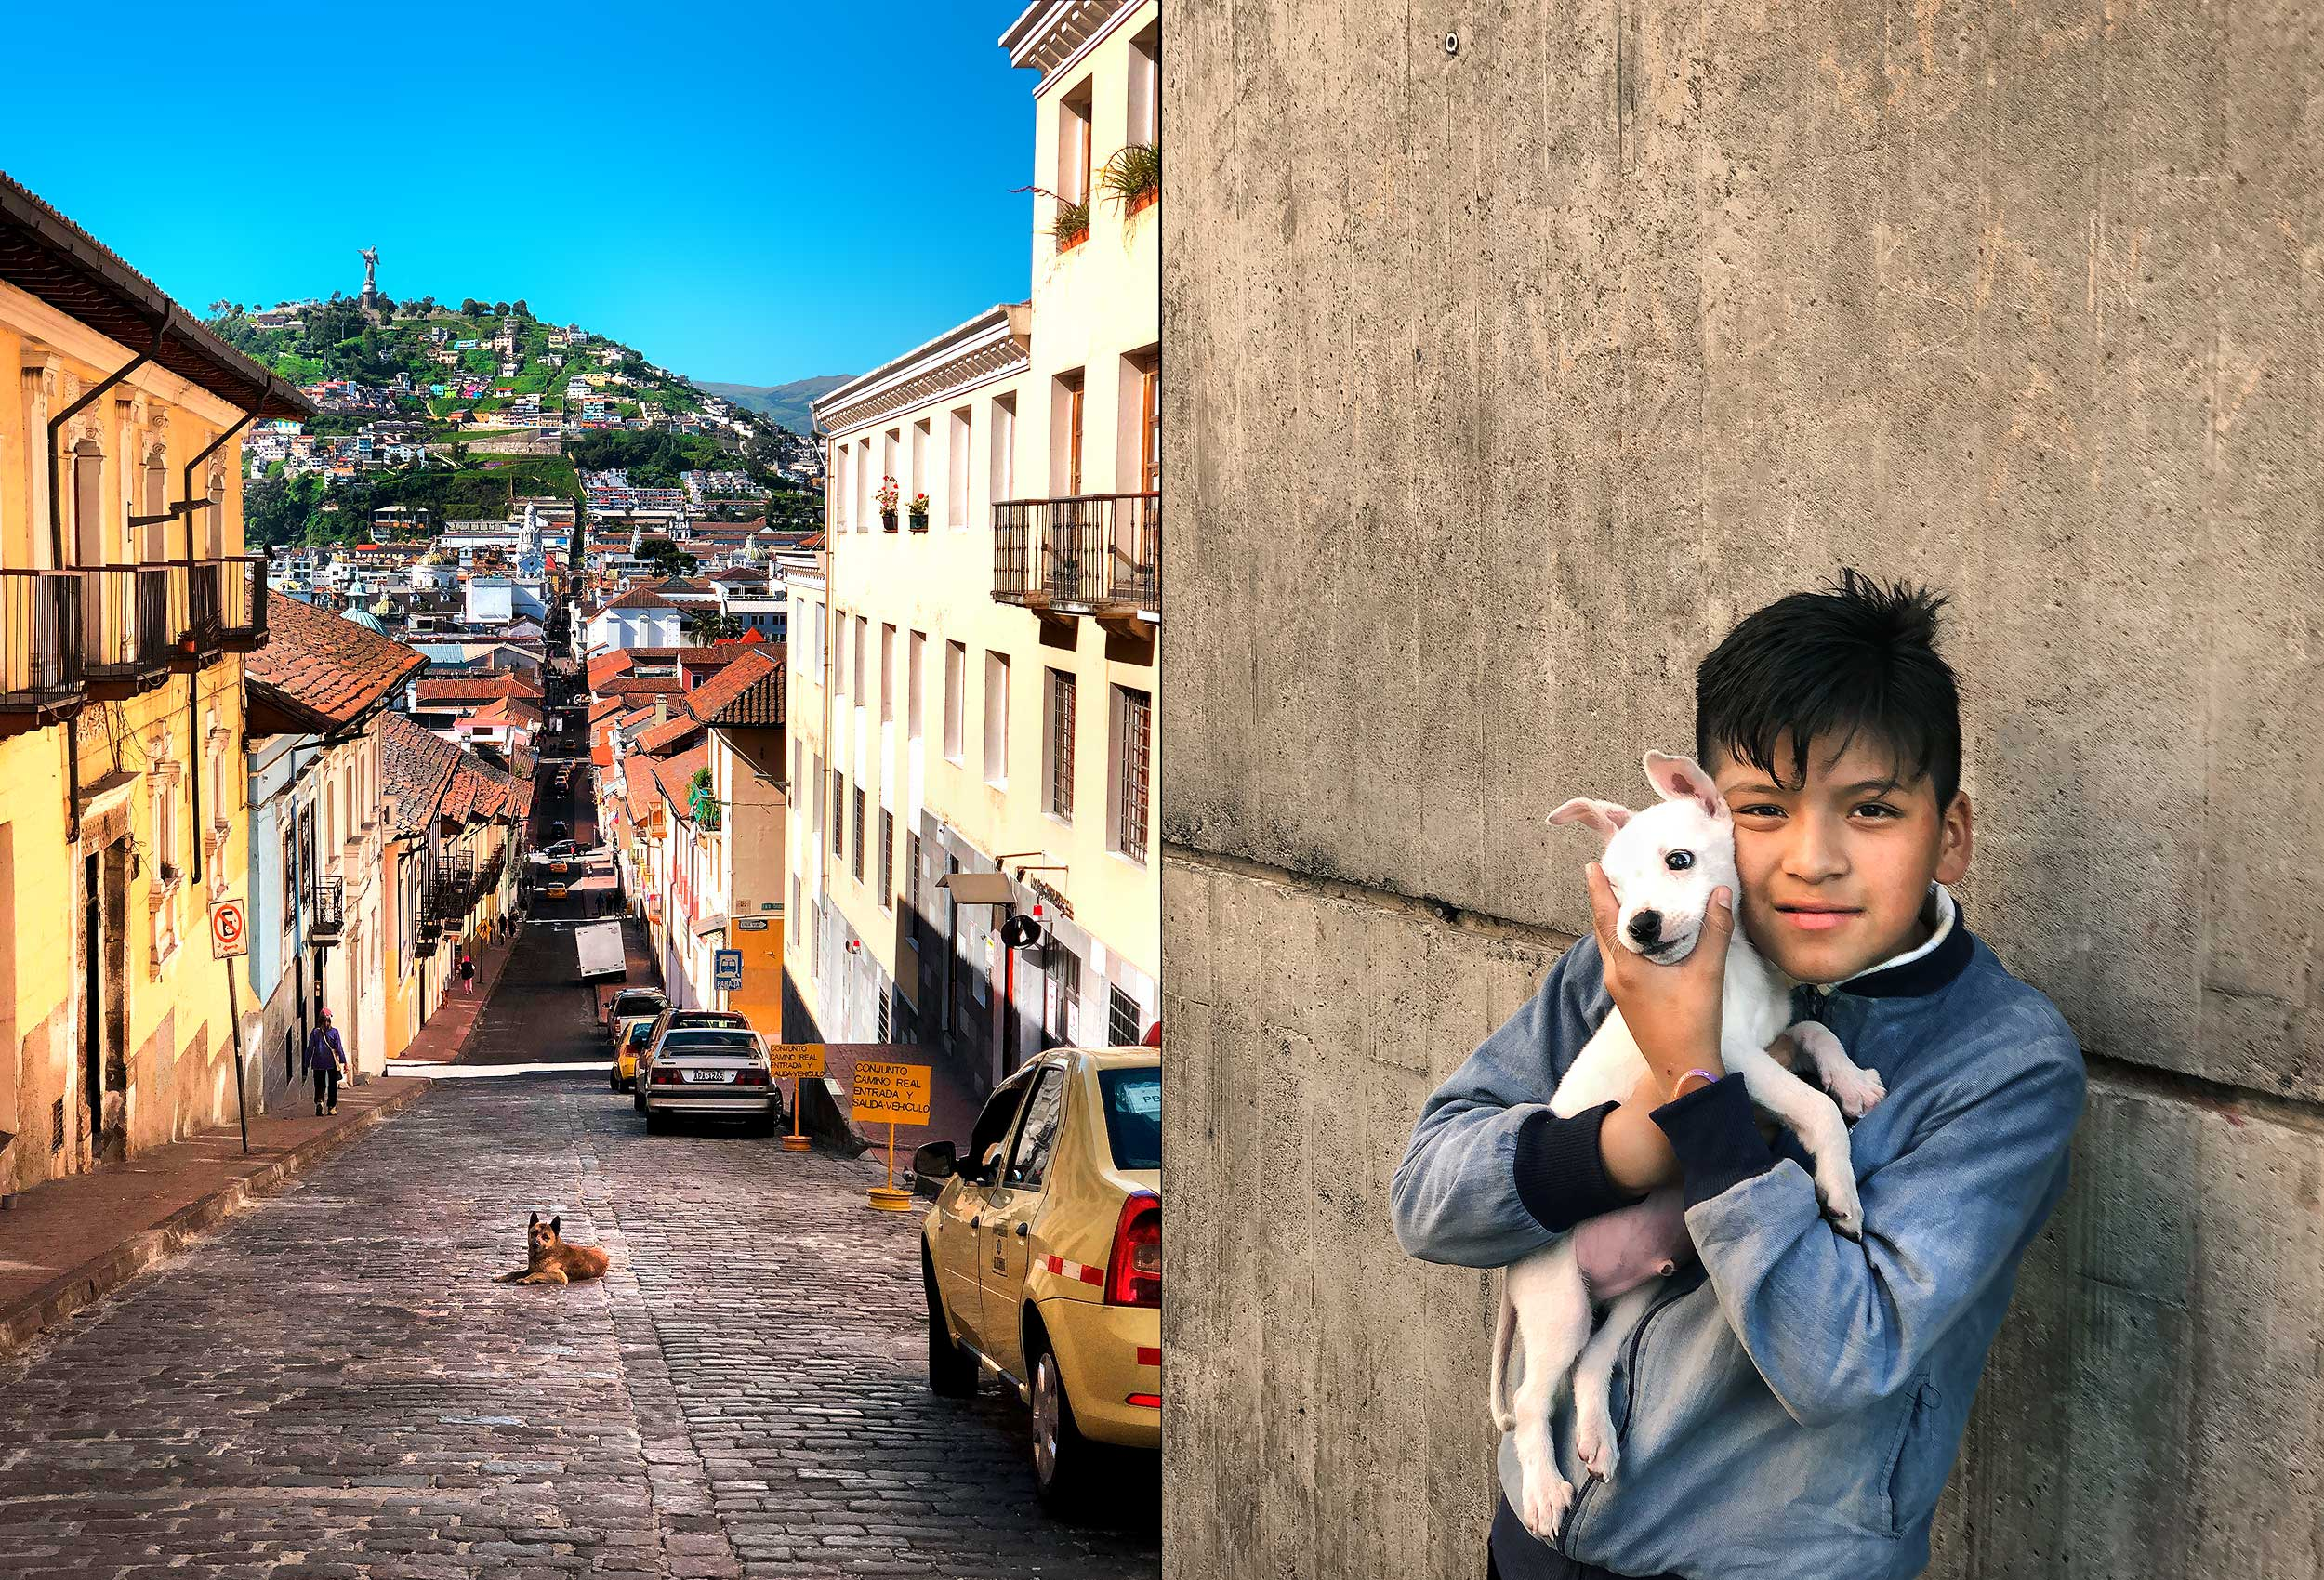 a dog sits in the middle of a street with the virgin of quito statue and hillside viewed in the background.